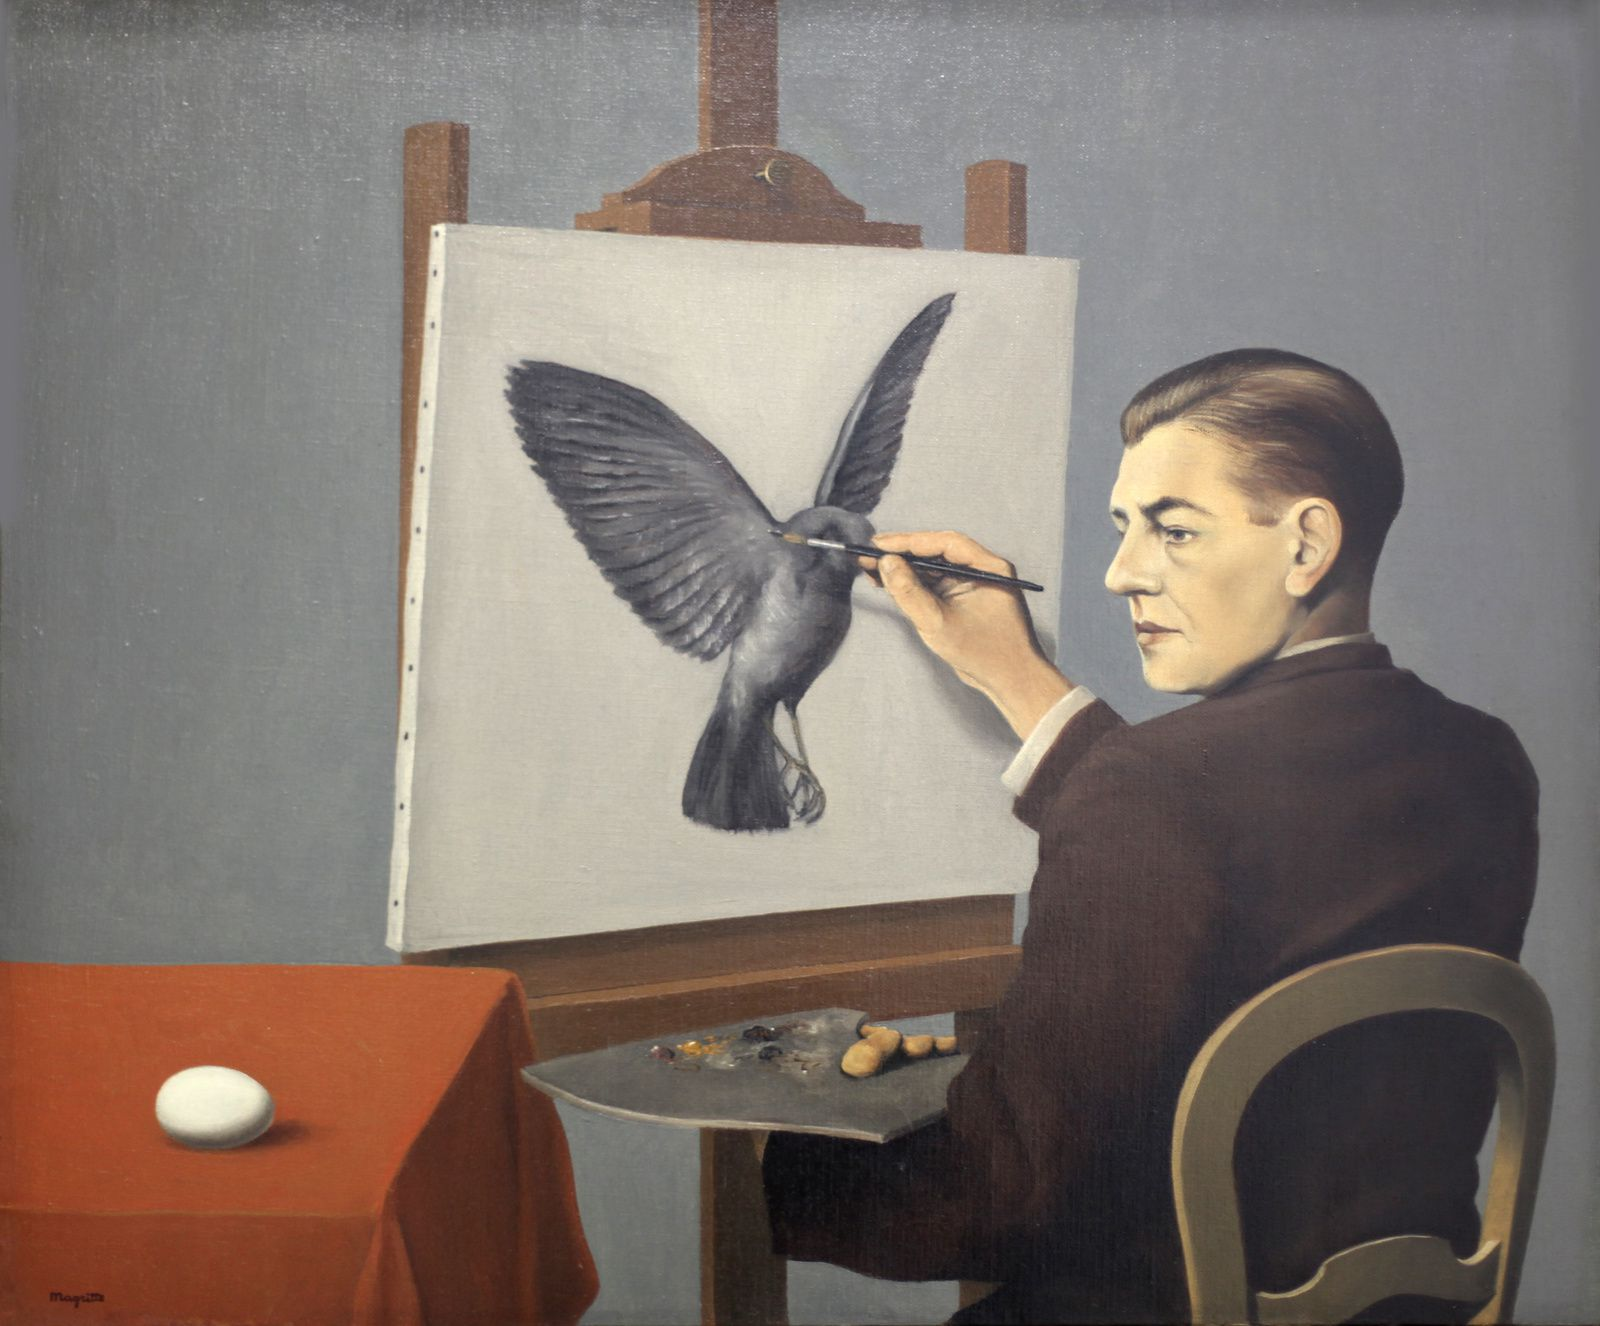 """La Clairvoyance"", 1936 de René MAGRITTE - Collection Particulière © Photo Éric Simon"